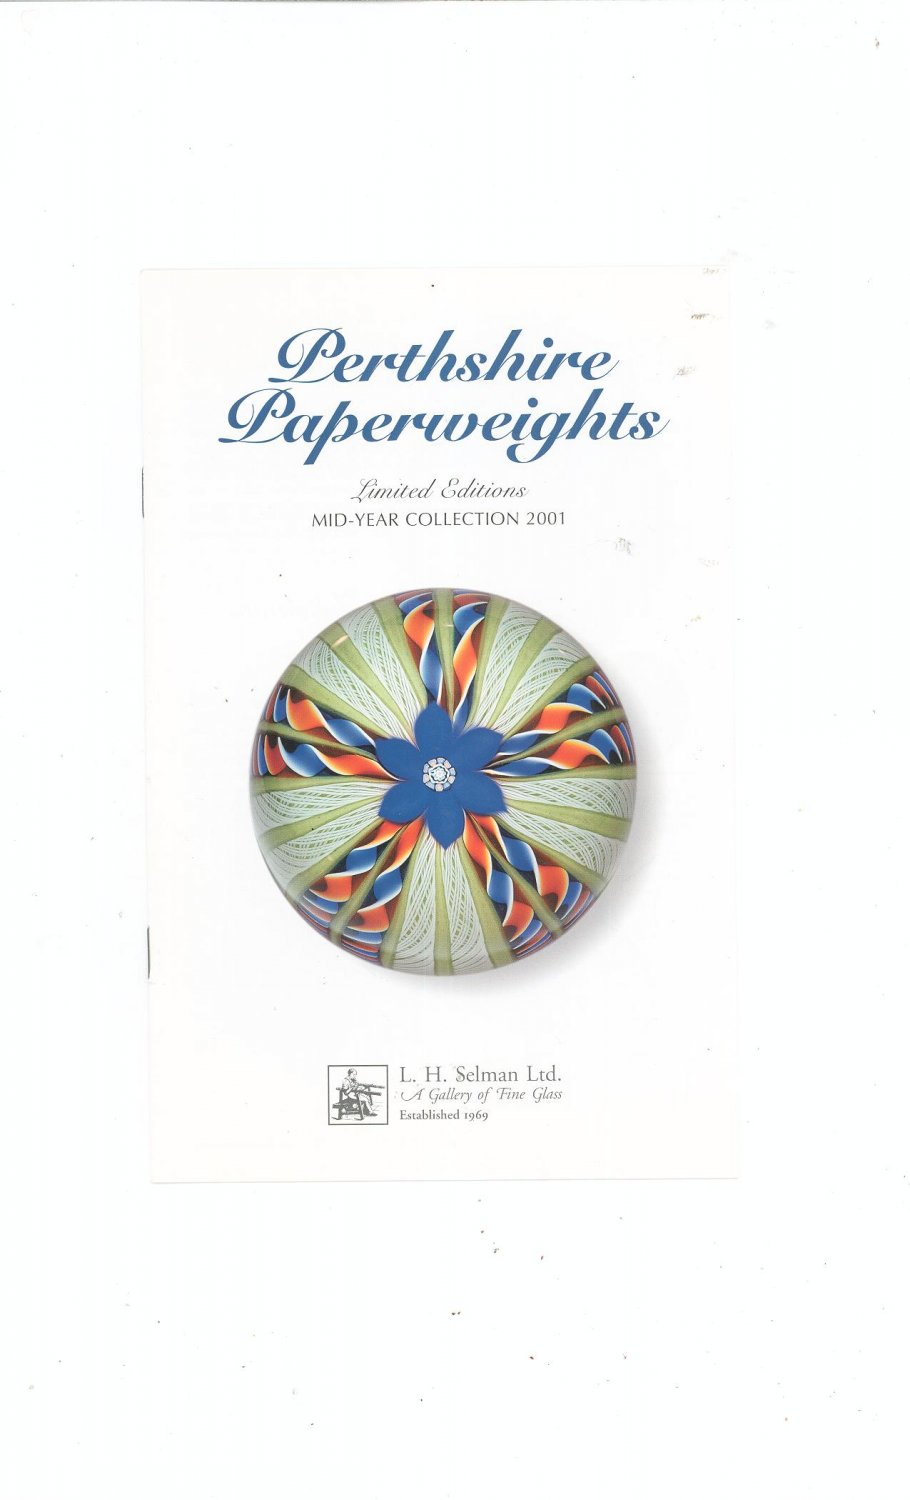 Perthshire Paperweights Limited Editions 2001 Catalog / Brochure by L. H. Selman Ltd. Paperweights